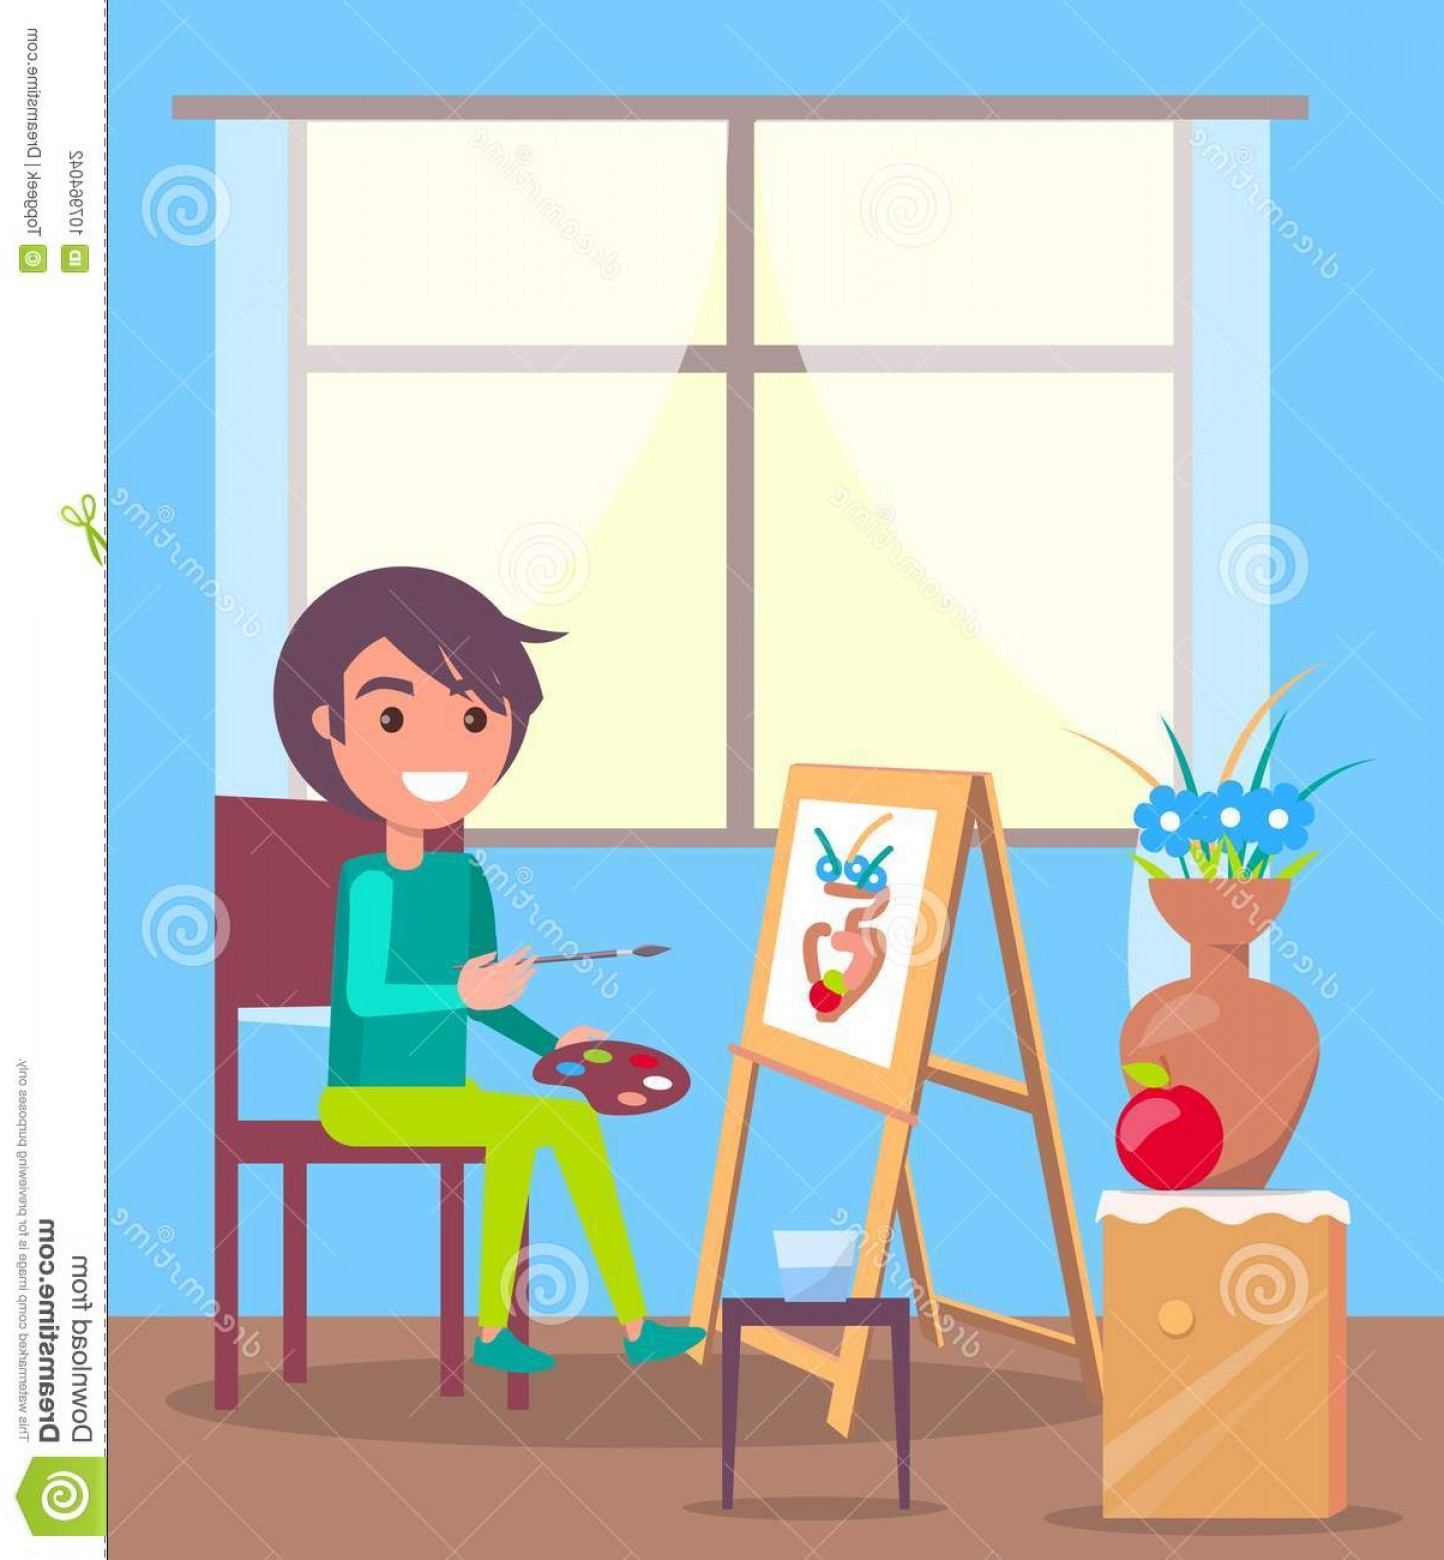 Clay Window Vector: Kid Sits Room Paint Still Life Picture Large Window Paints Flowers Clay Vase Paper Attached To Wooden Easel Vector Image